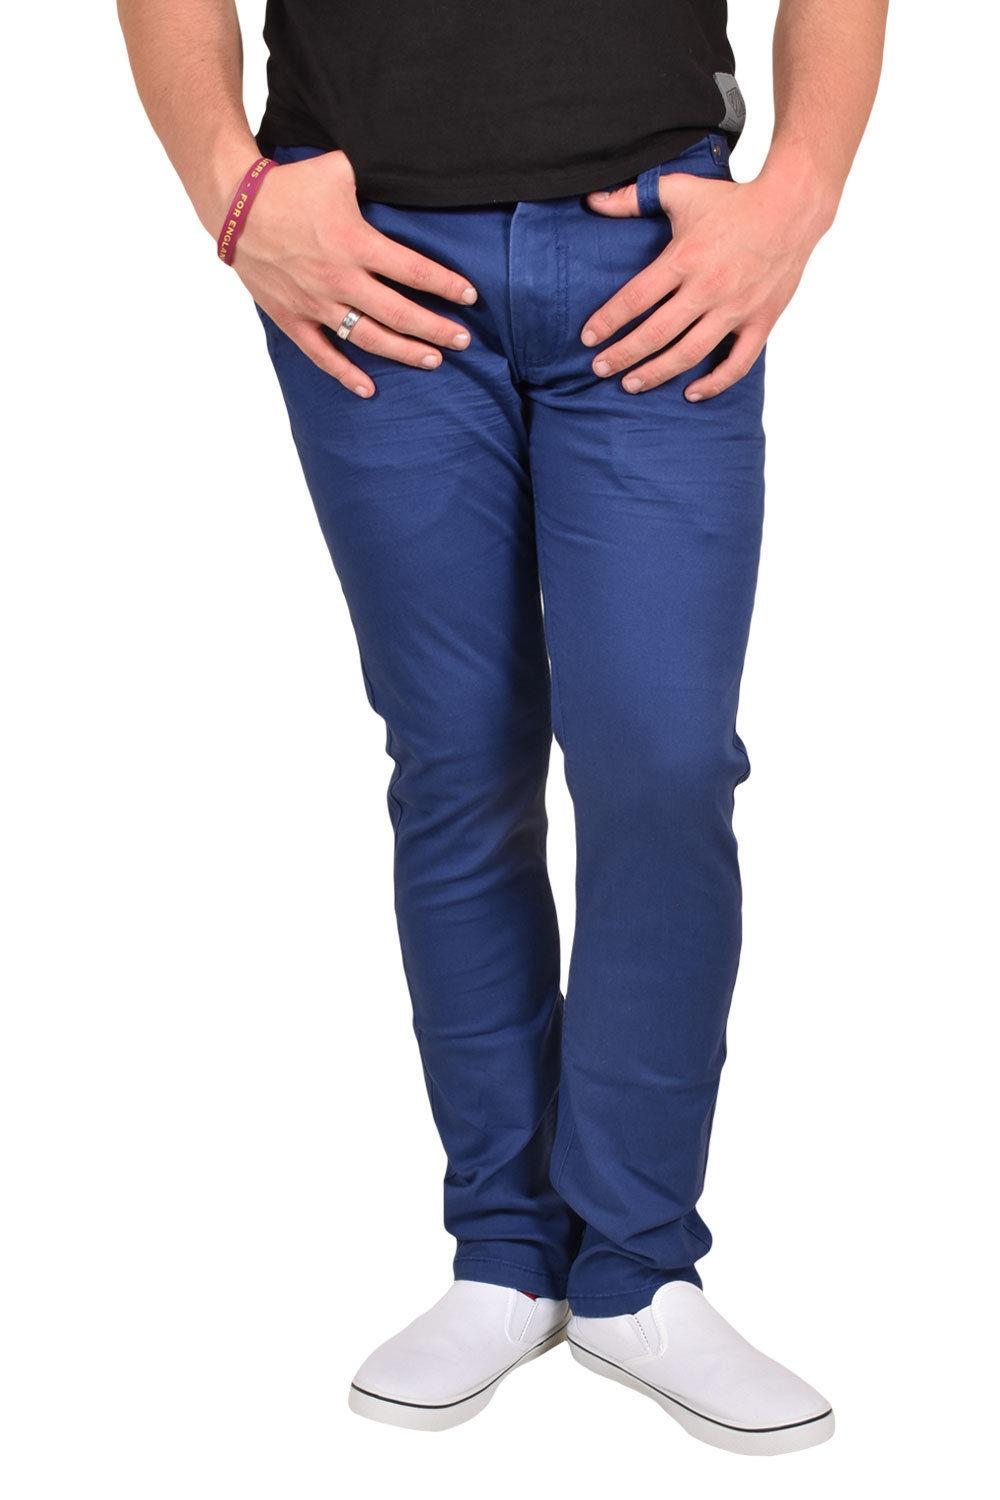 New-Mens-Designer-Jacksouth-Chino-Regular-Fit-Stretch-Cotton-Rich-Twill-Trousers thumbnail 3